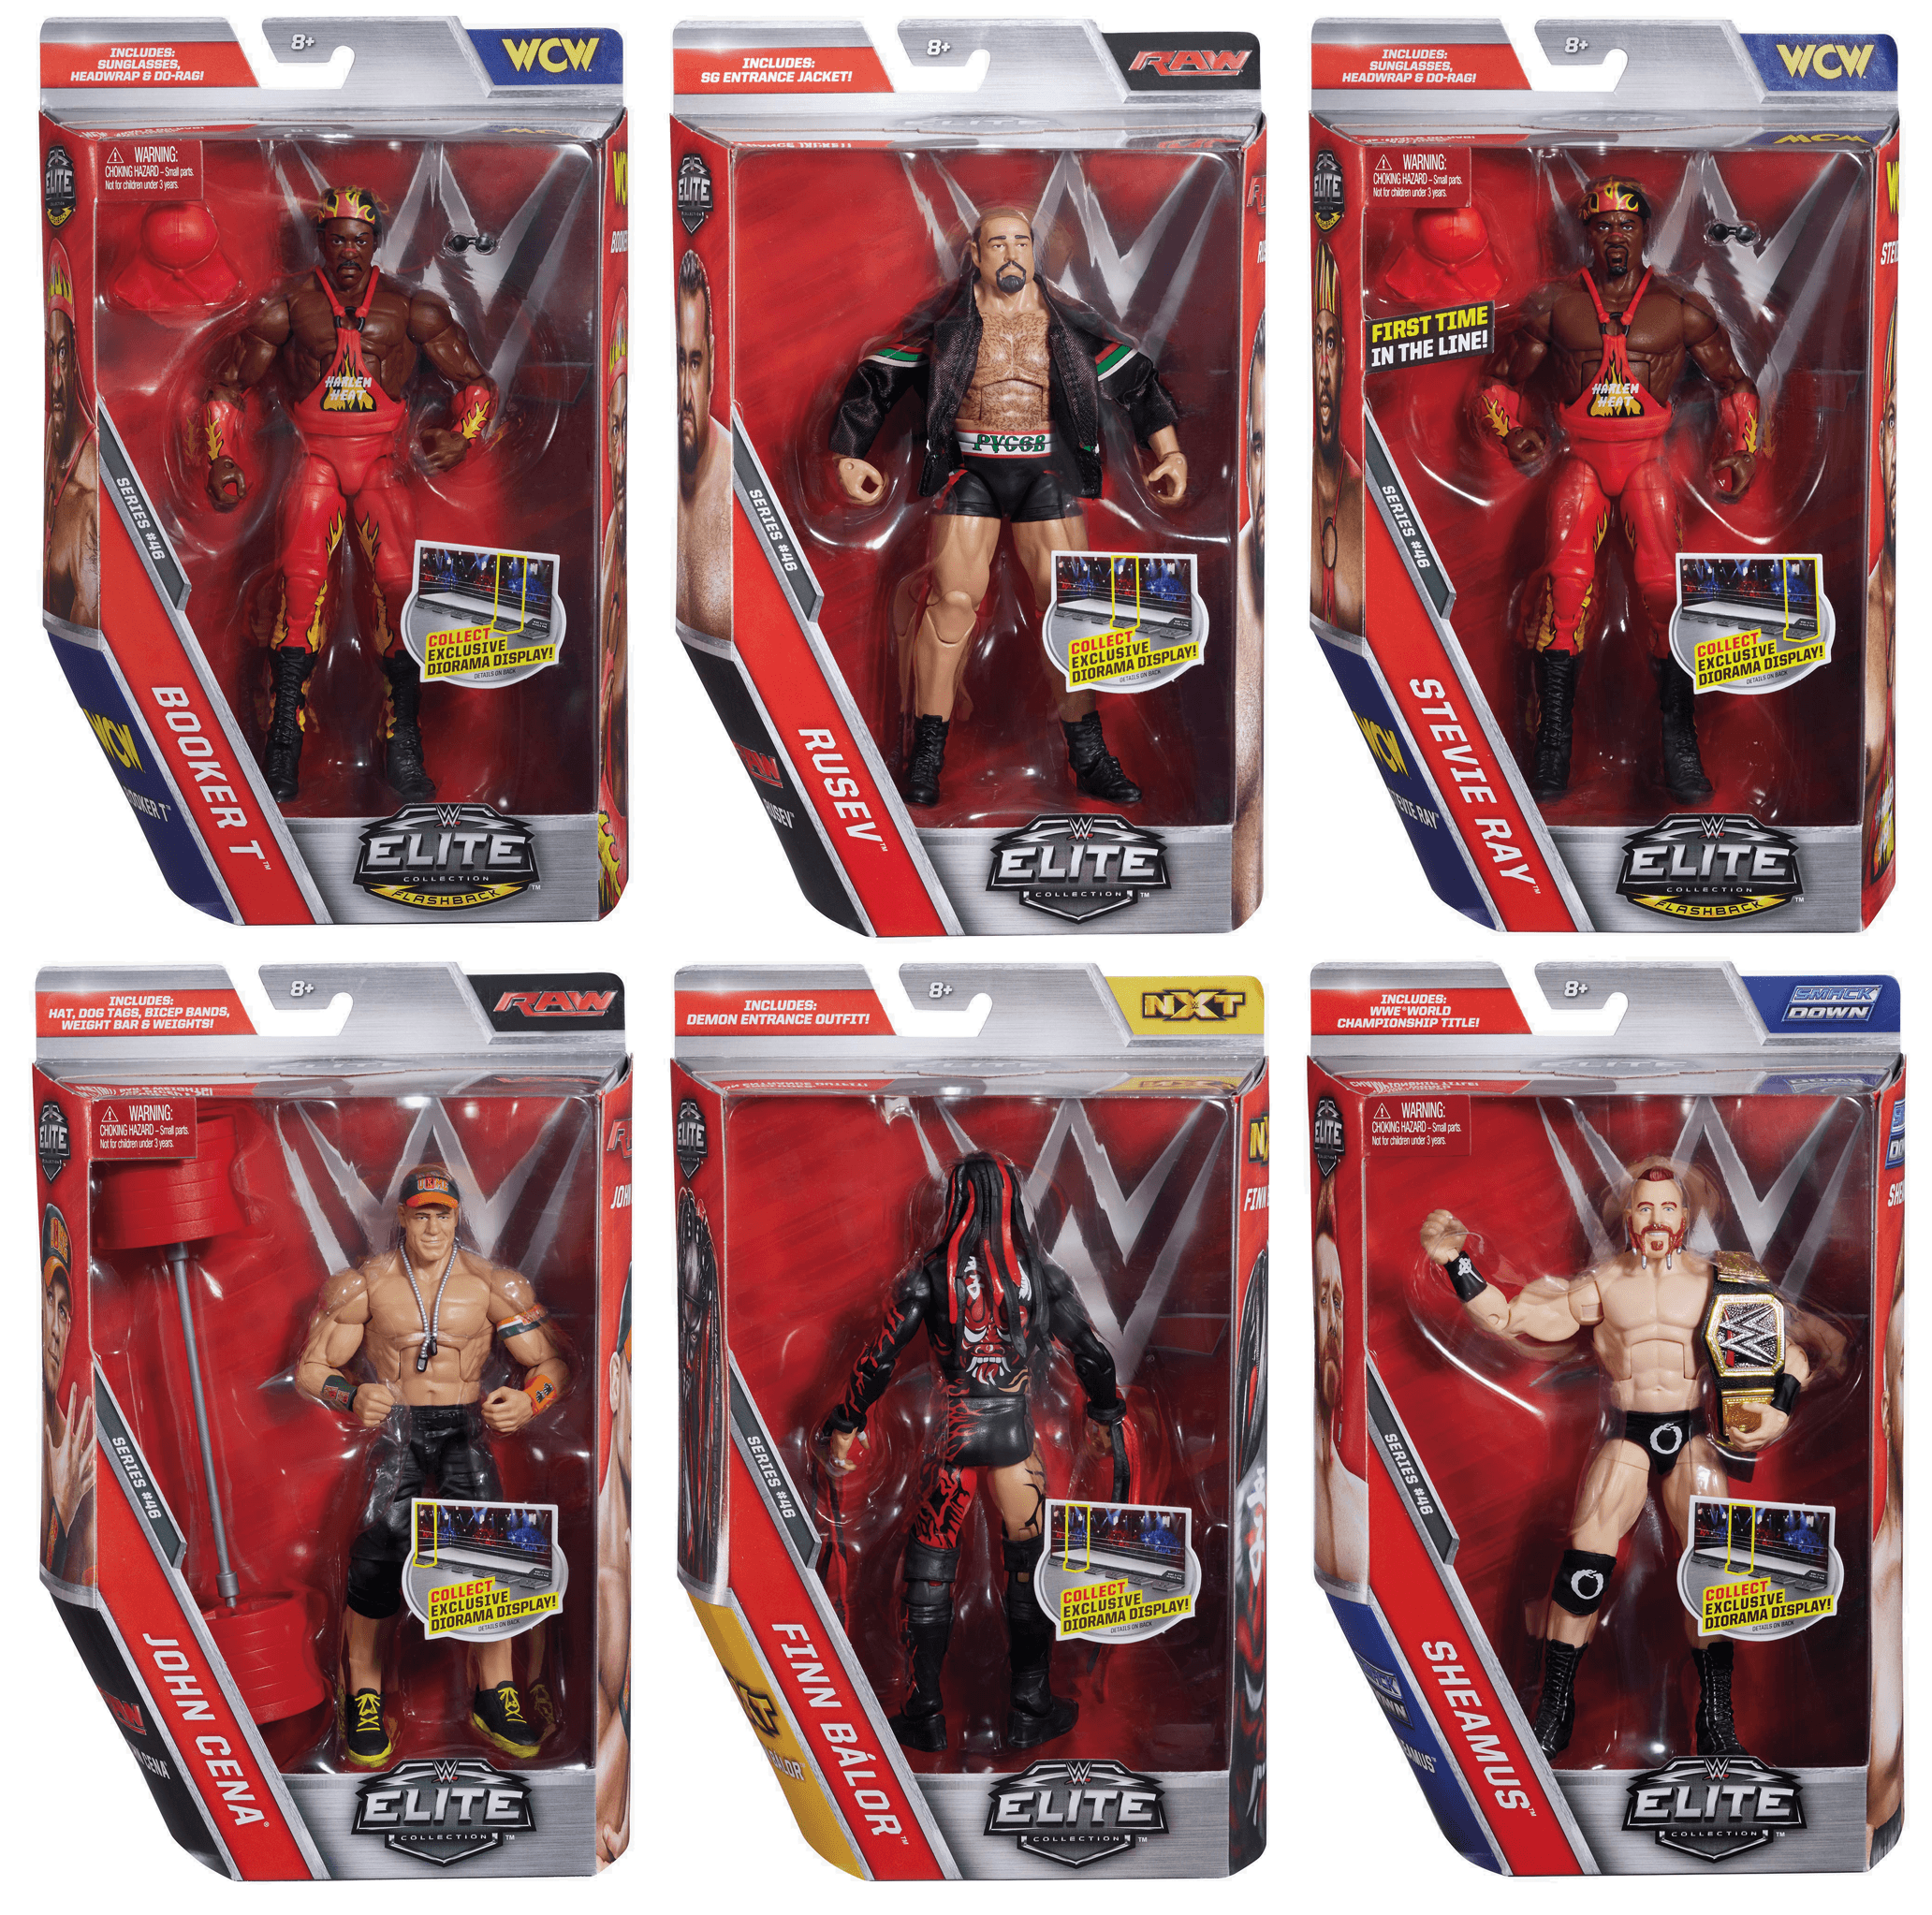 WWE Elite Collection Series #46 | John Cena - Demon Finn Balor - Sheamus - Rusev - Harlem Heat Booker T - Stevie Ray | Deluxe Wrestling Action Figure Toy Set | WWF Raw Smackdown WCW NXT Merchandise